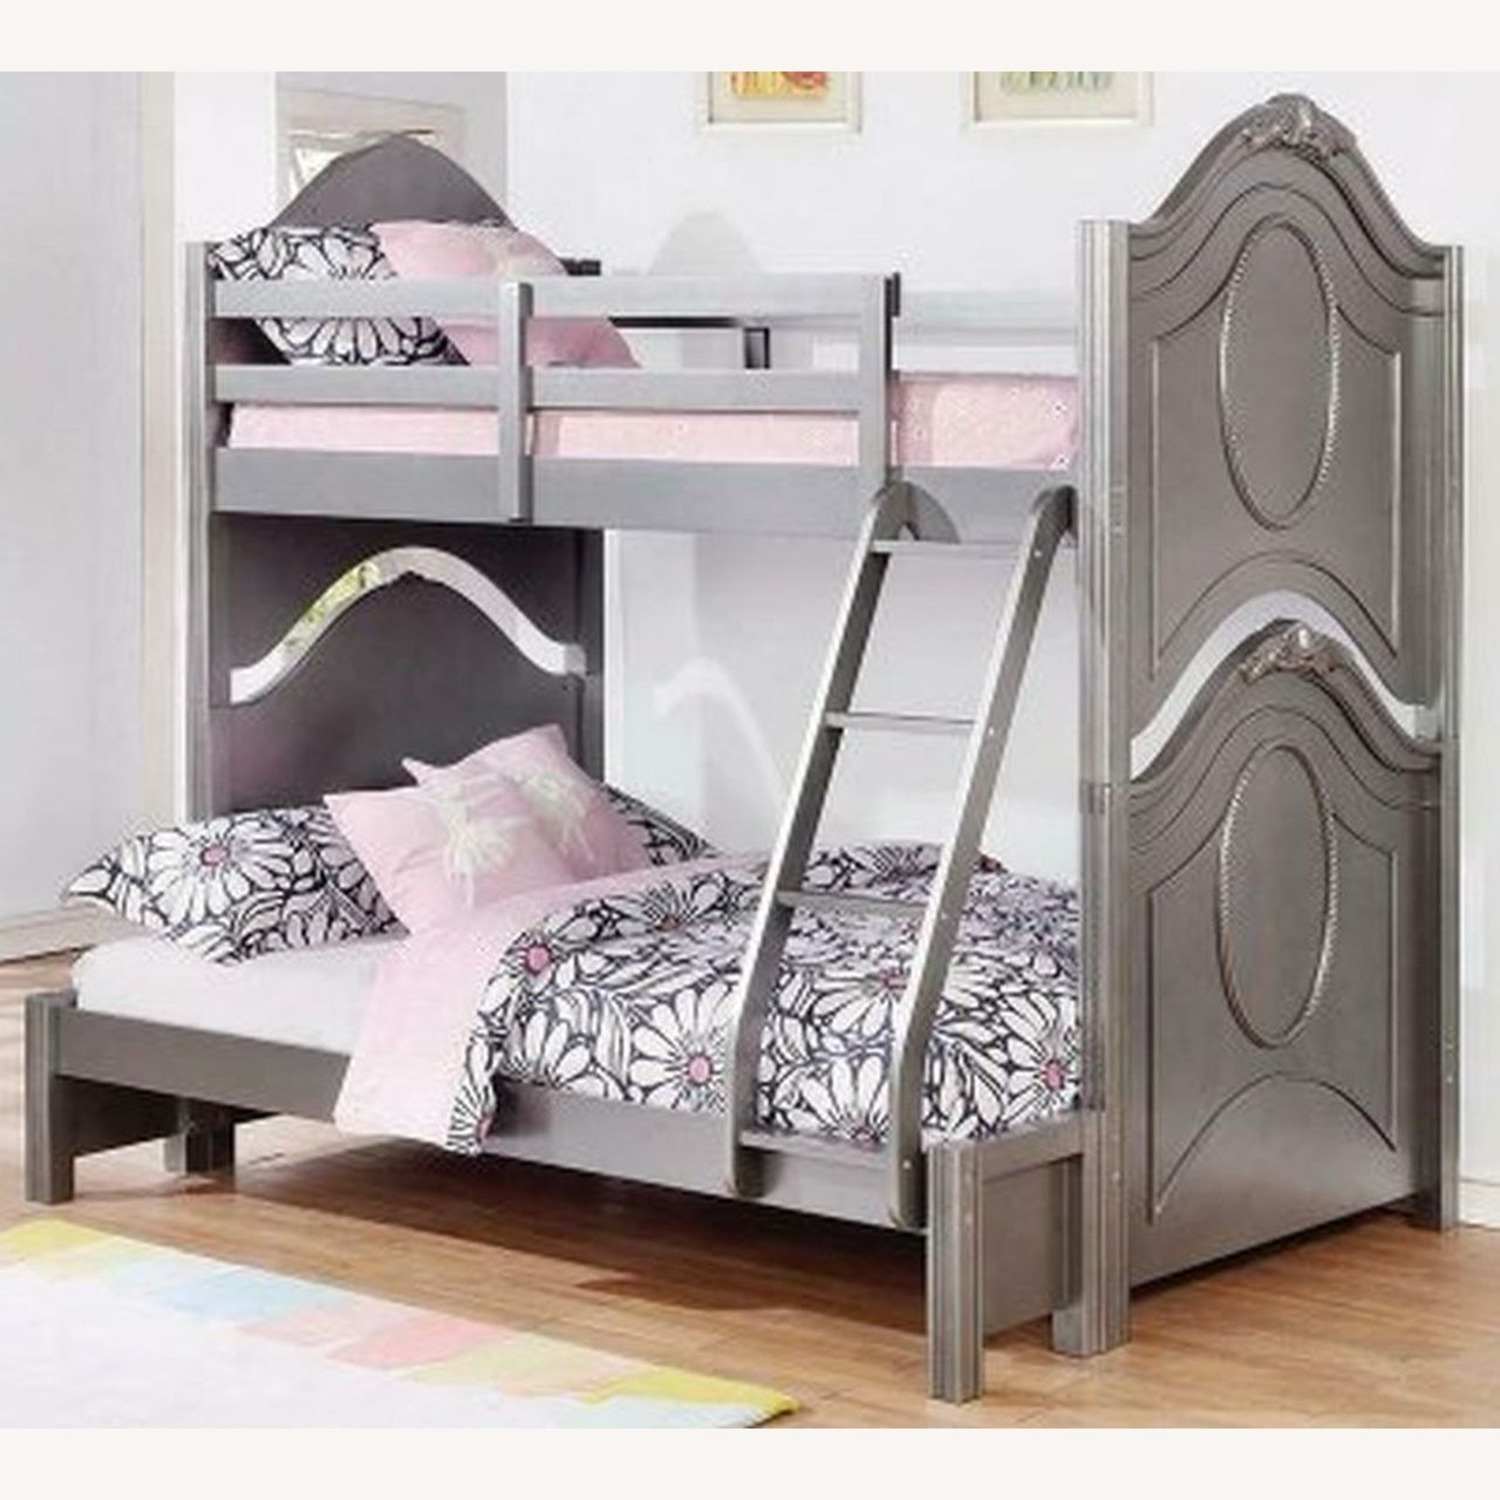 Twin Over Full Bunk Bed In Metallic Pewter Finish - image-2